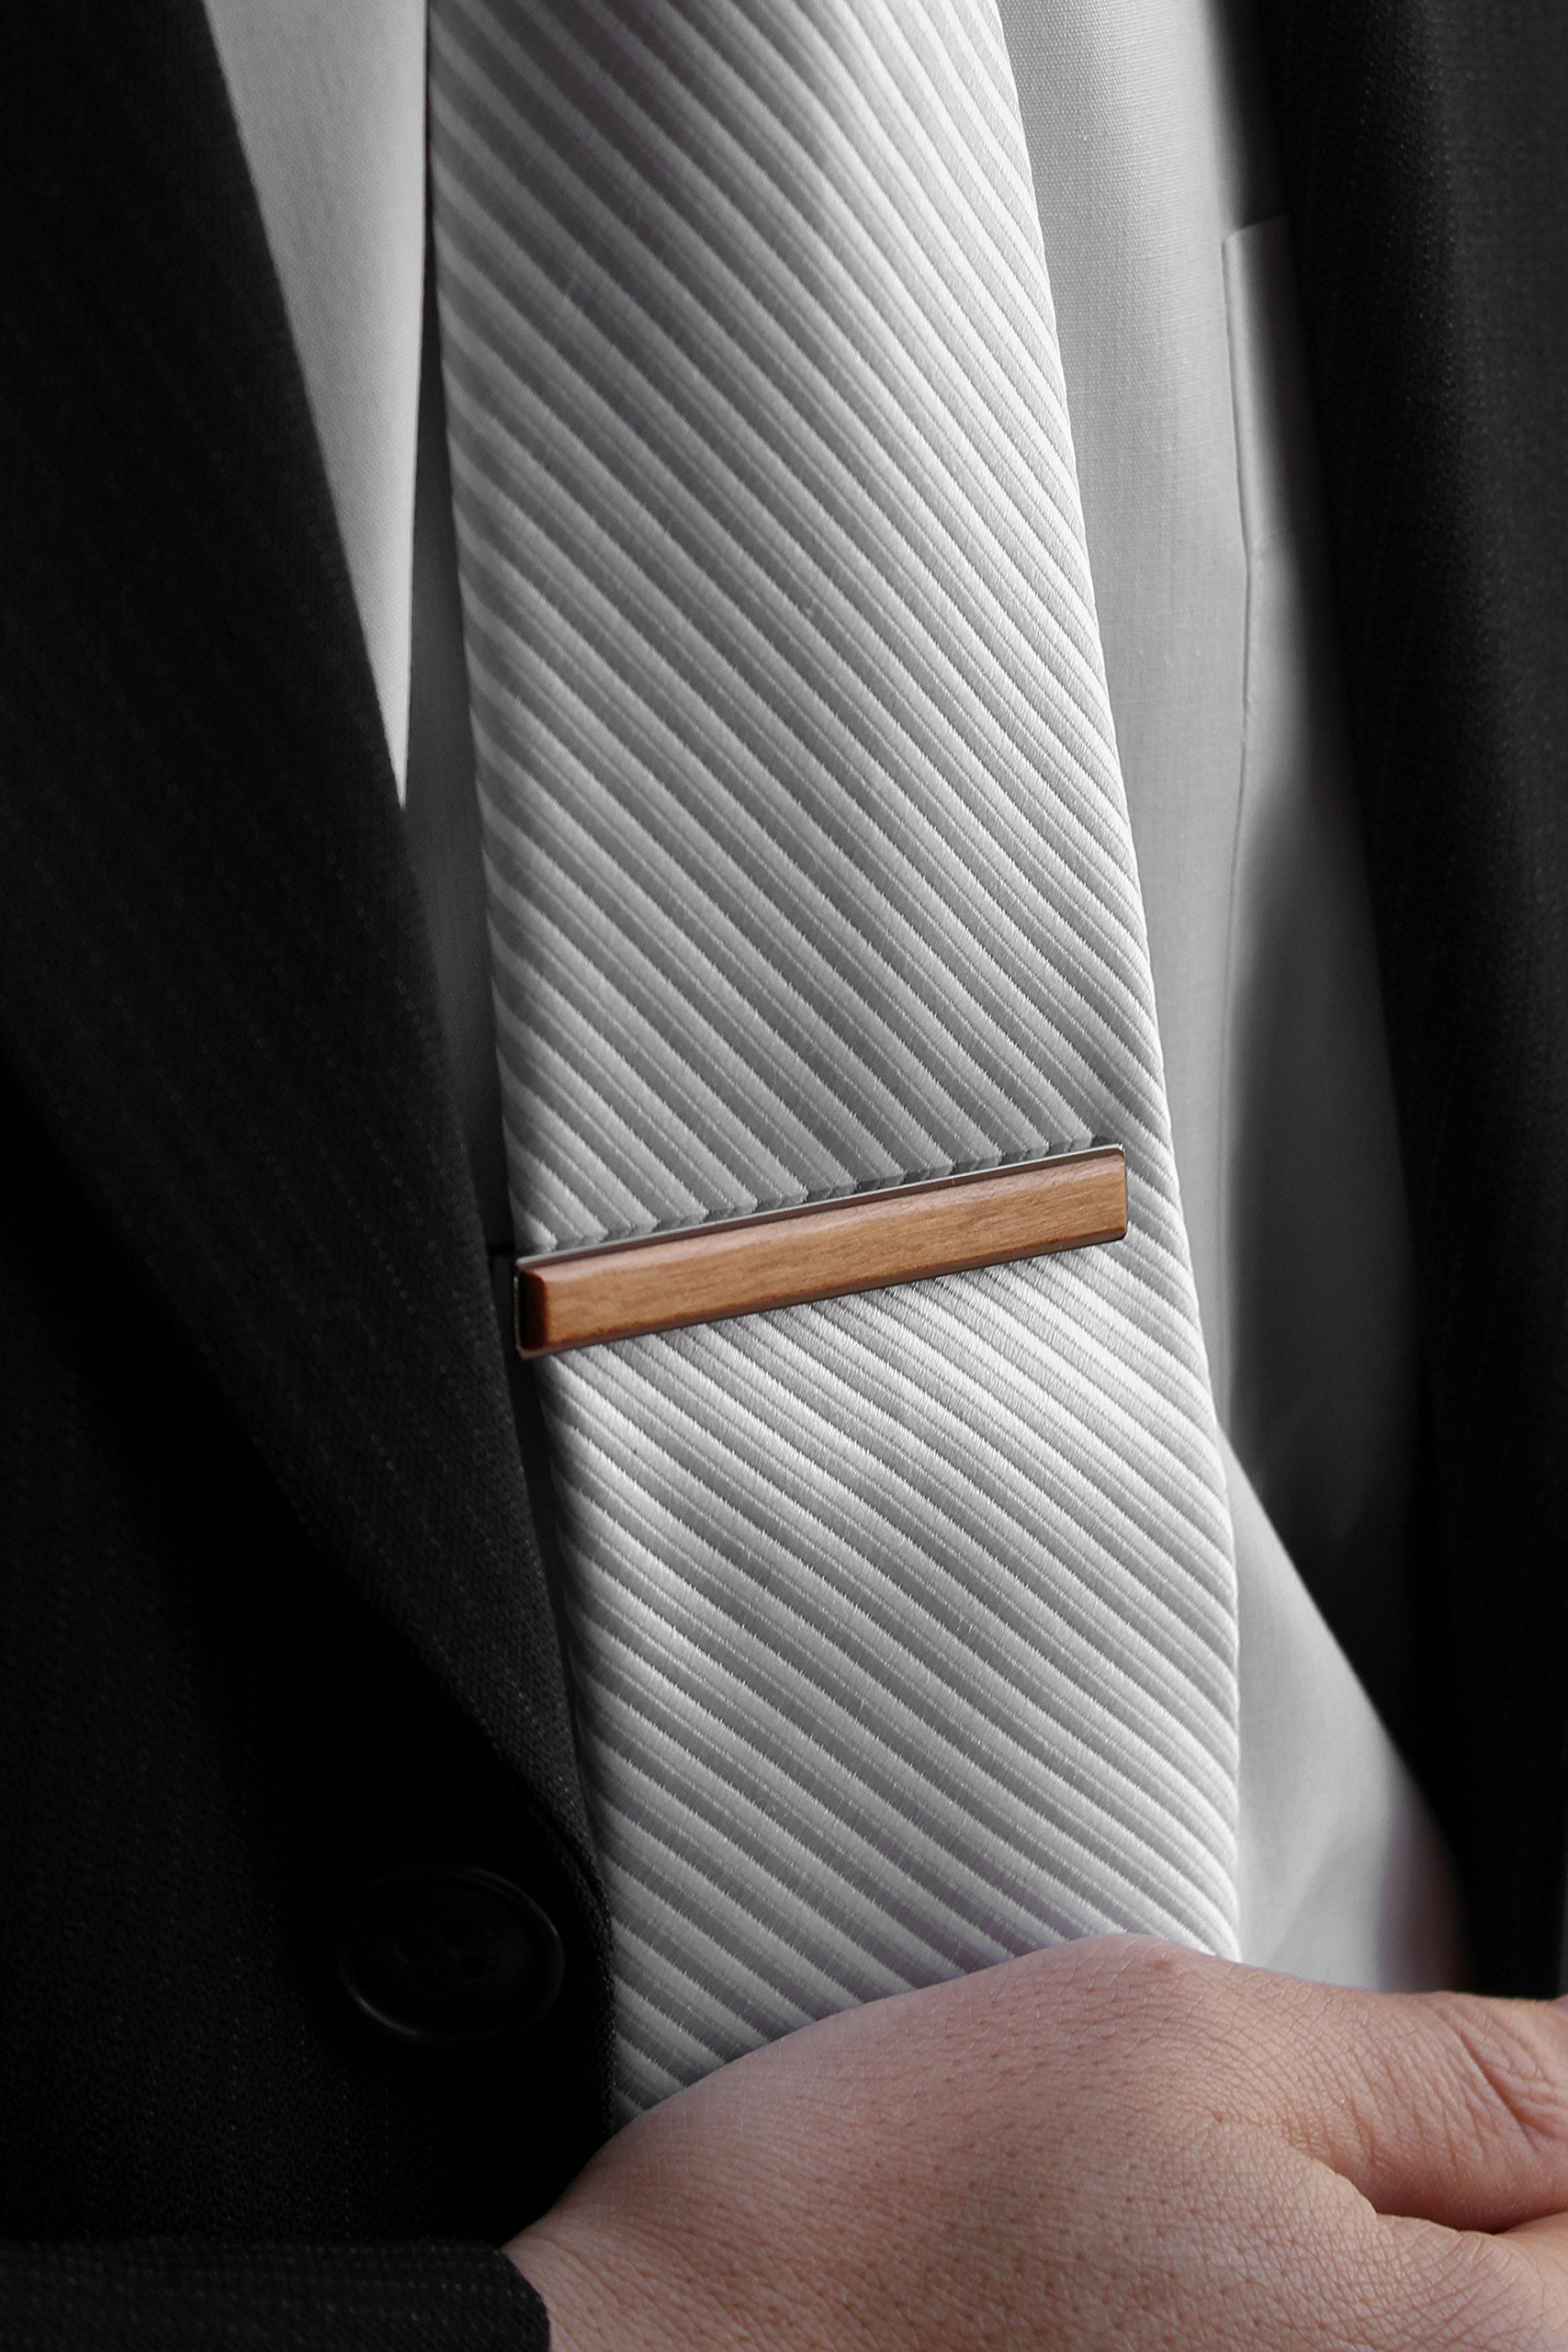 +LUMBER by Hacoa PL077 Wooden Tie Clip, TIE PINS, tie bar for a smart impression. (Cherry) by +LUMBER by Hacoa (Image #2)